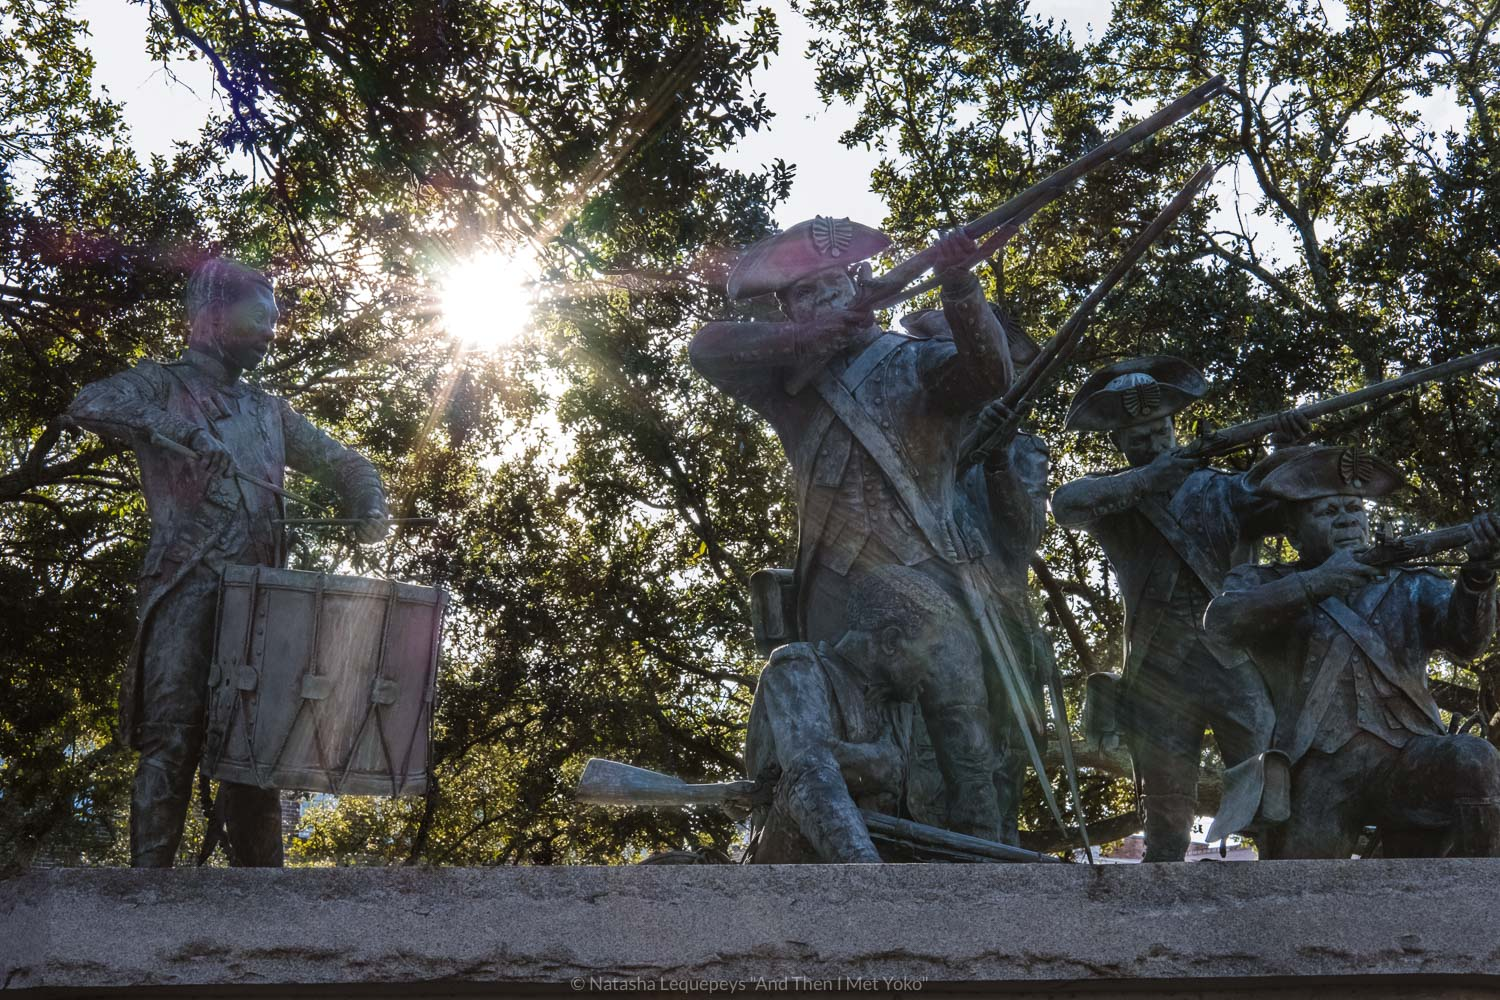 """The Haitian Monument in Franklin Square, downtown Savannah, Georgia. Travel photography and guide by © Natasha Lequepeys for """"And Then I Met Yoko"""". #savannah #usa #travelguide #travelblog"""